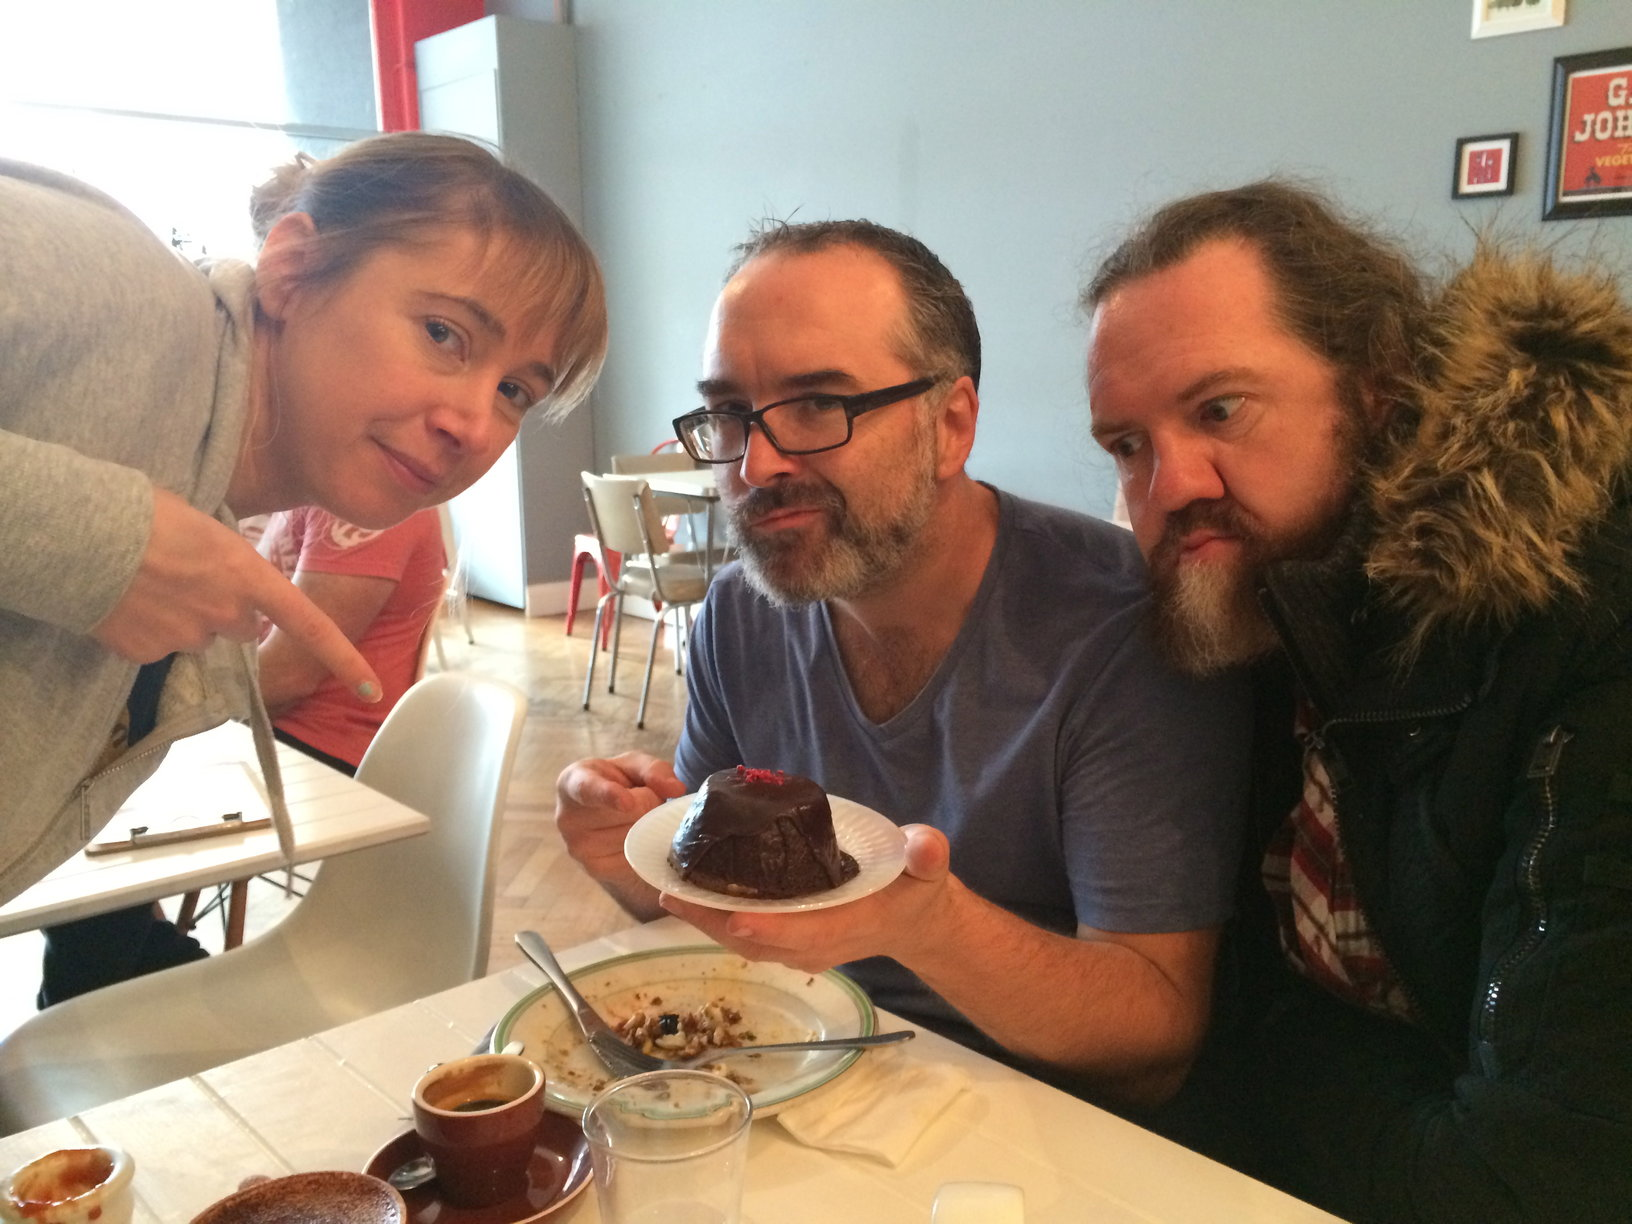 Tiff, Dave and I contemplate the hardening of the arteries via mud cake.